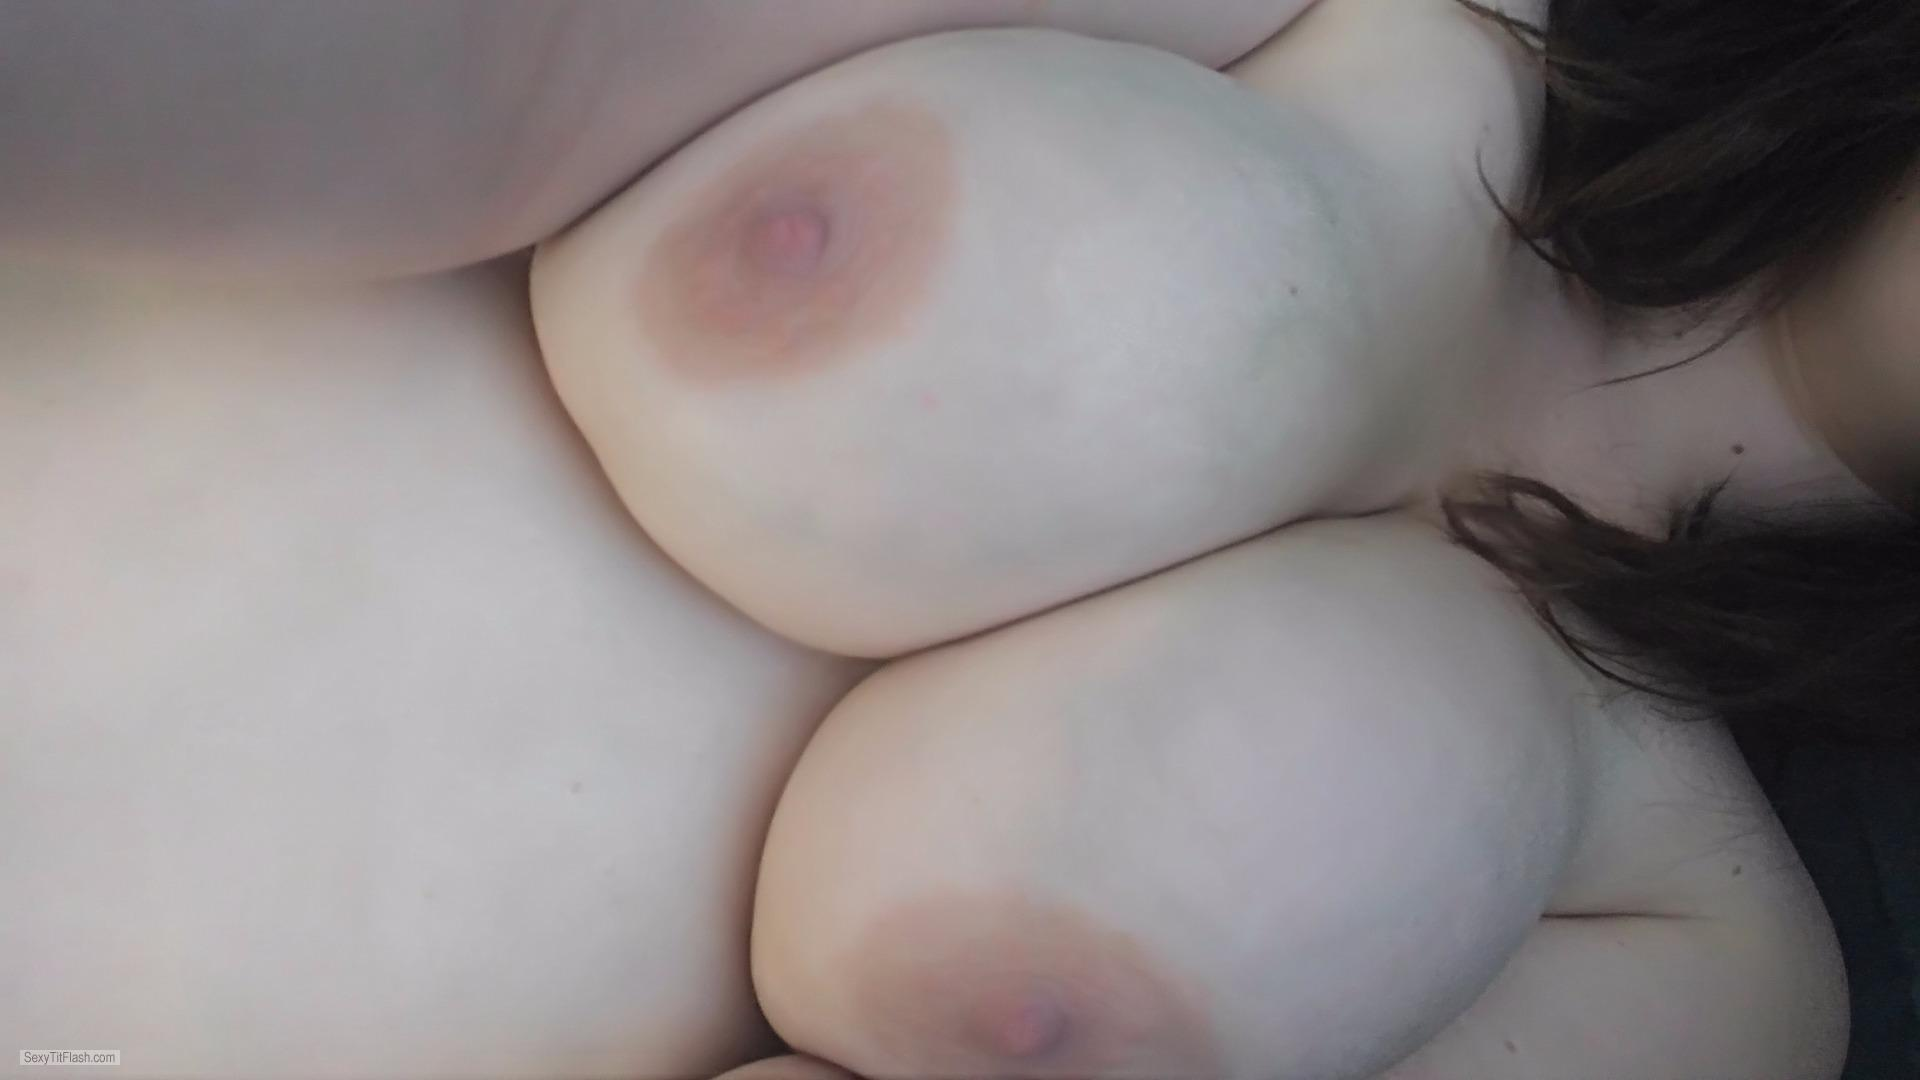 Tit Flash: My Big Tits (Selfie) - Panda from United States